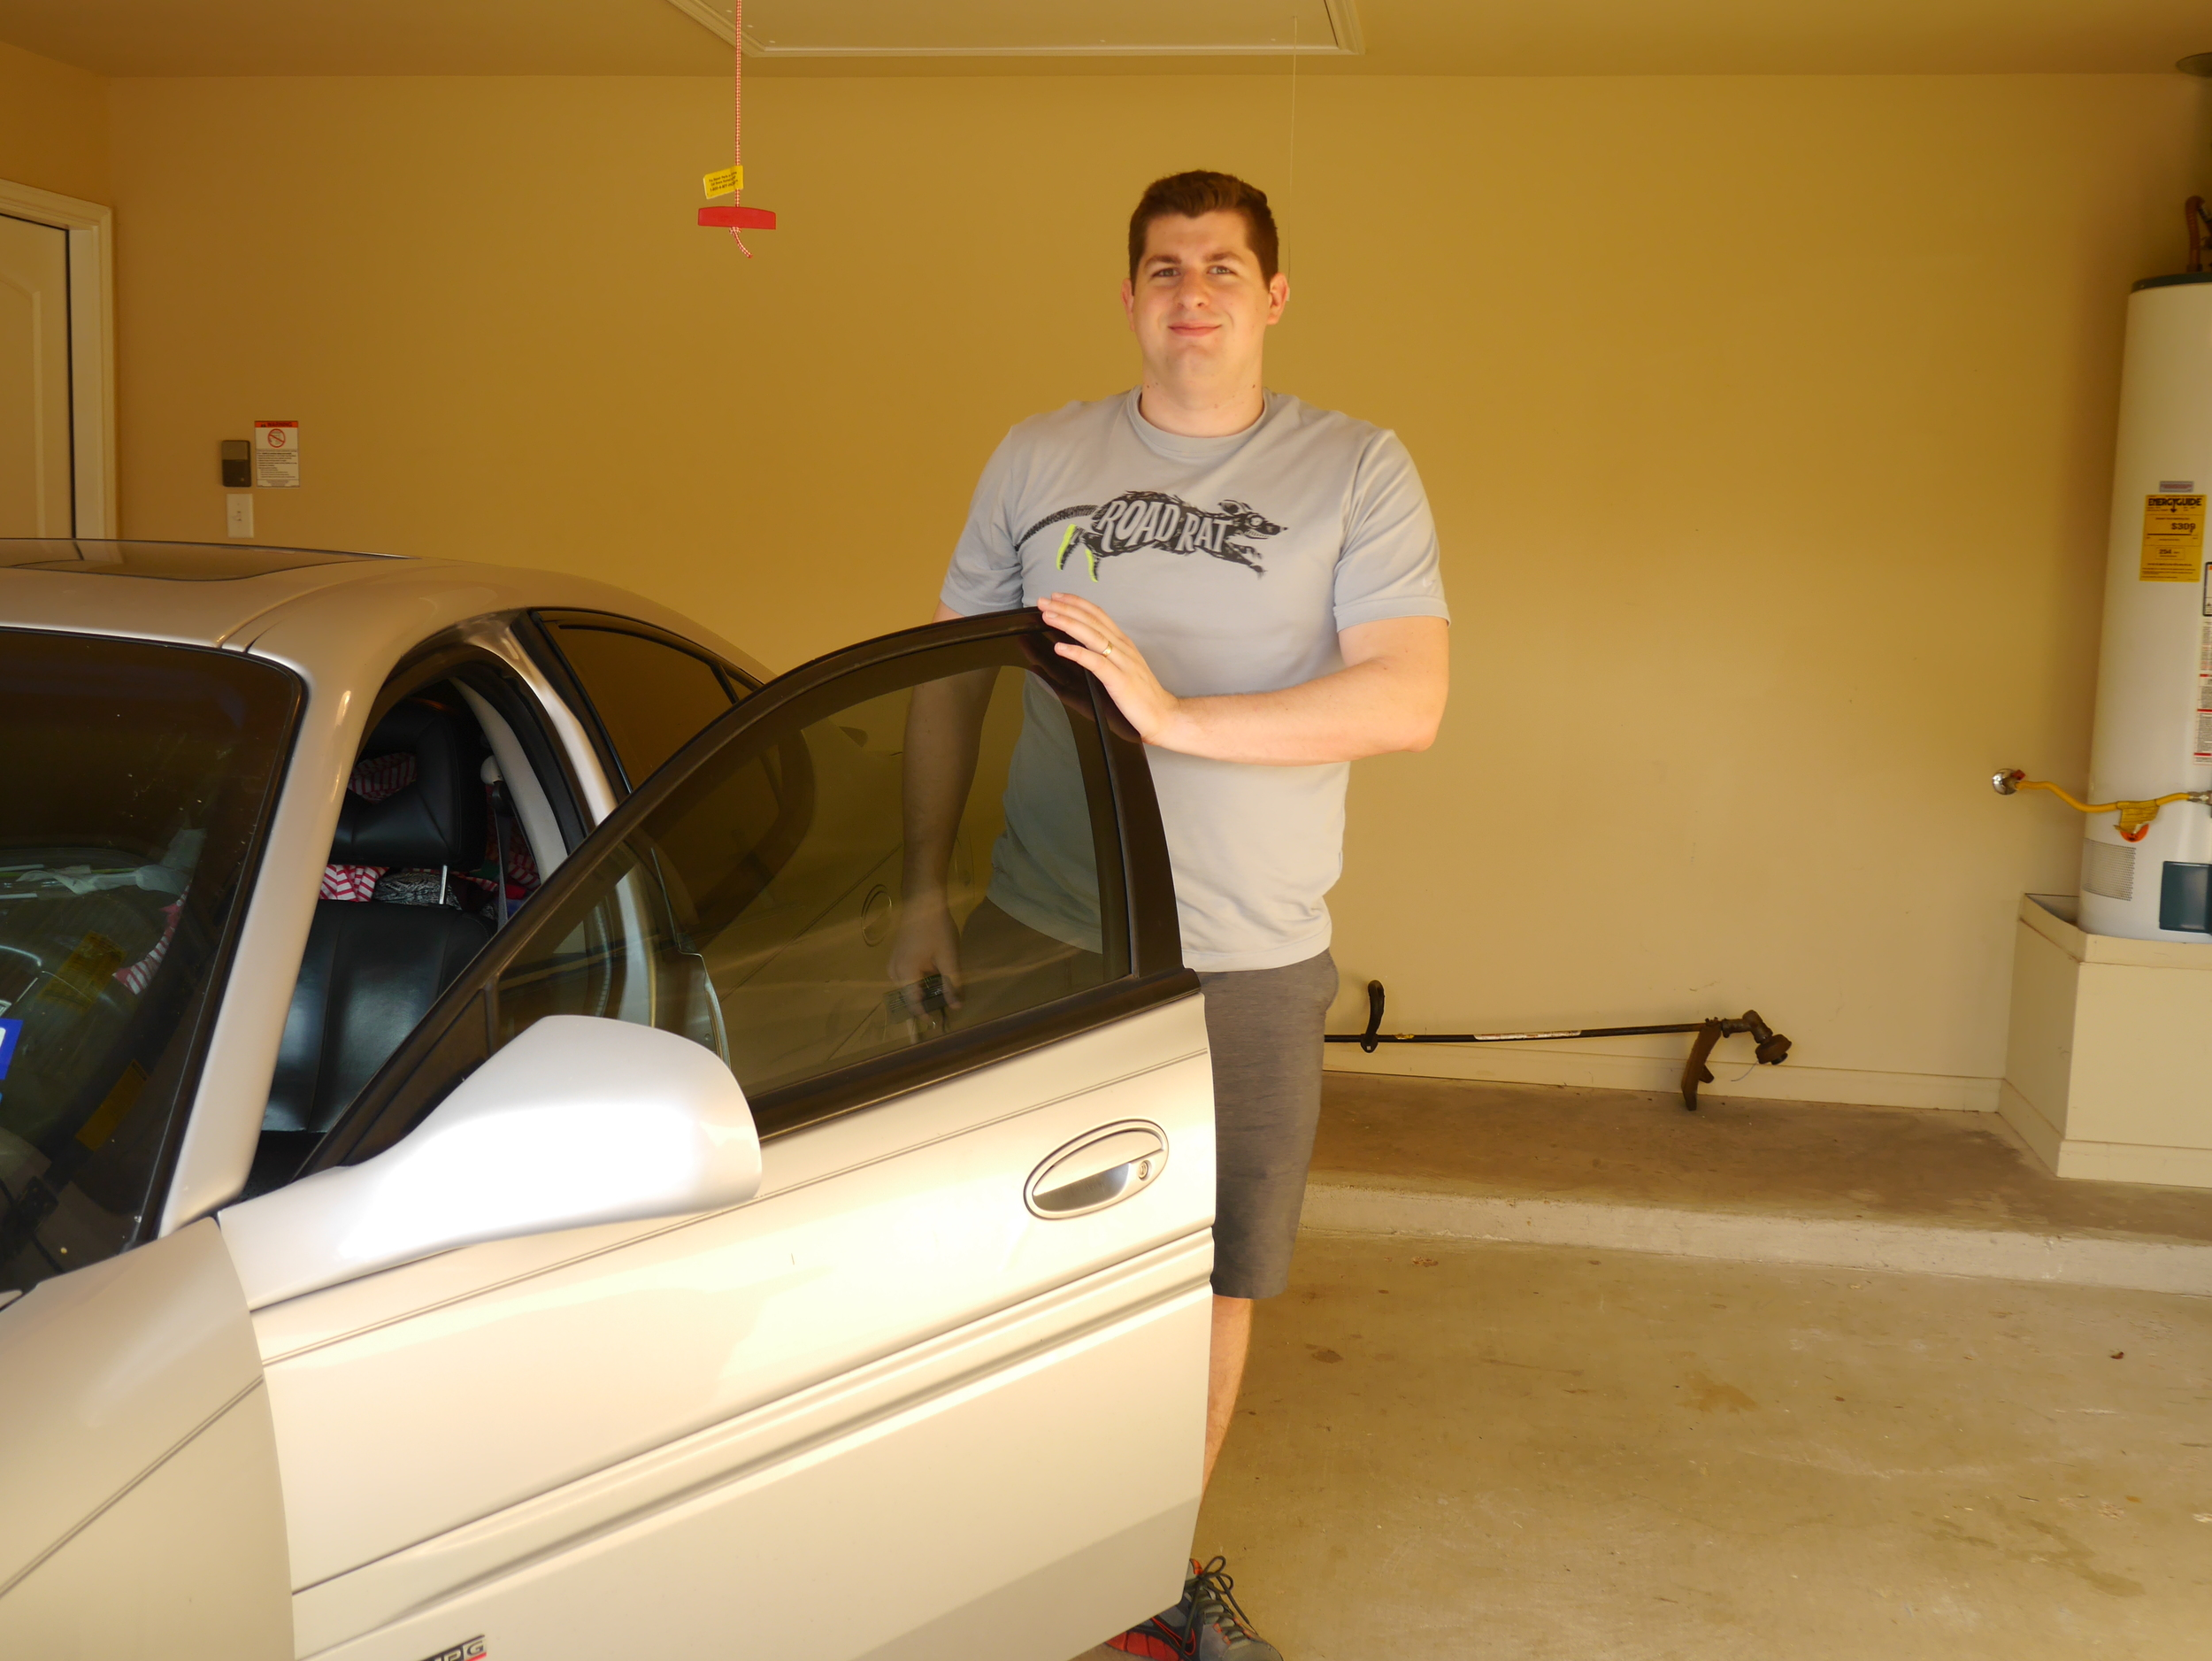 First time driving into garage